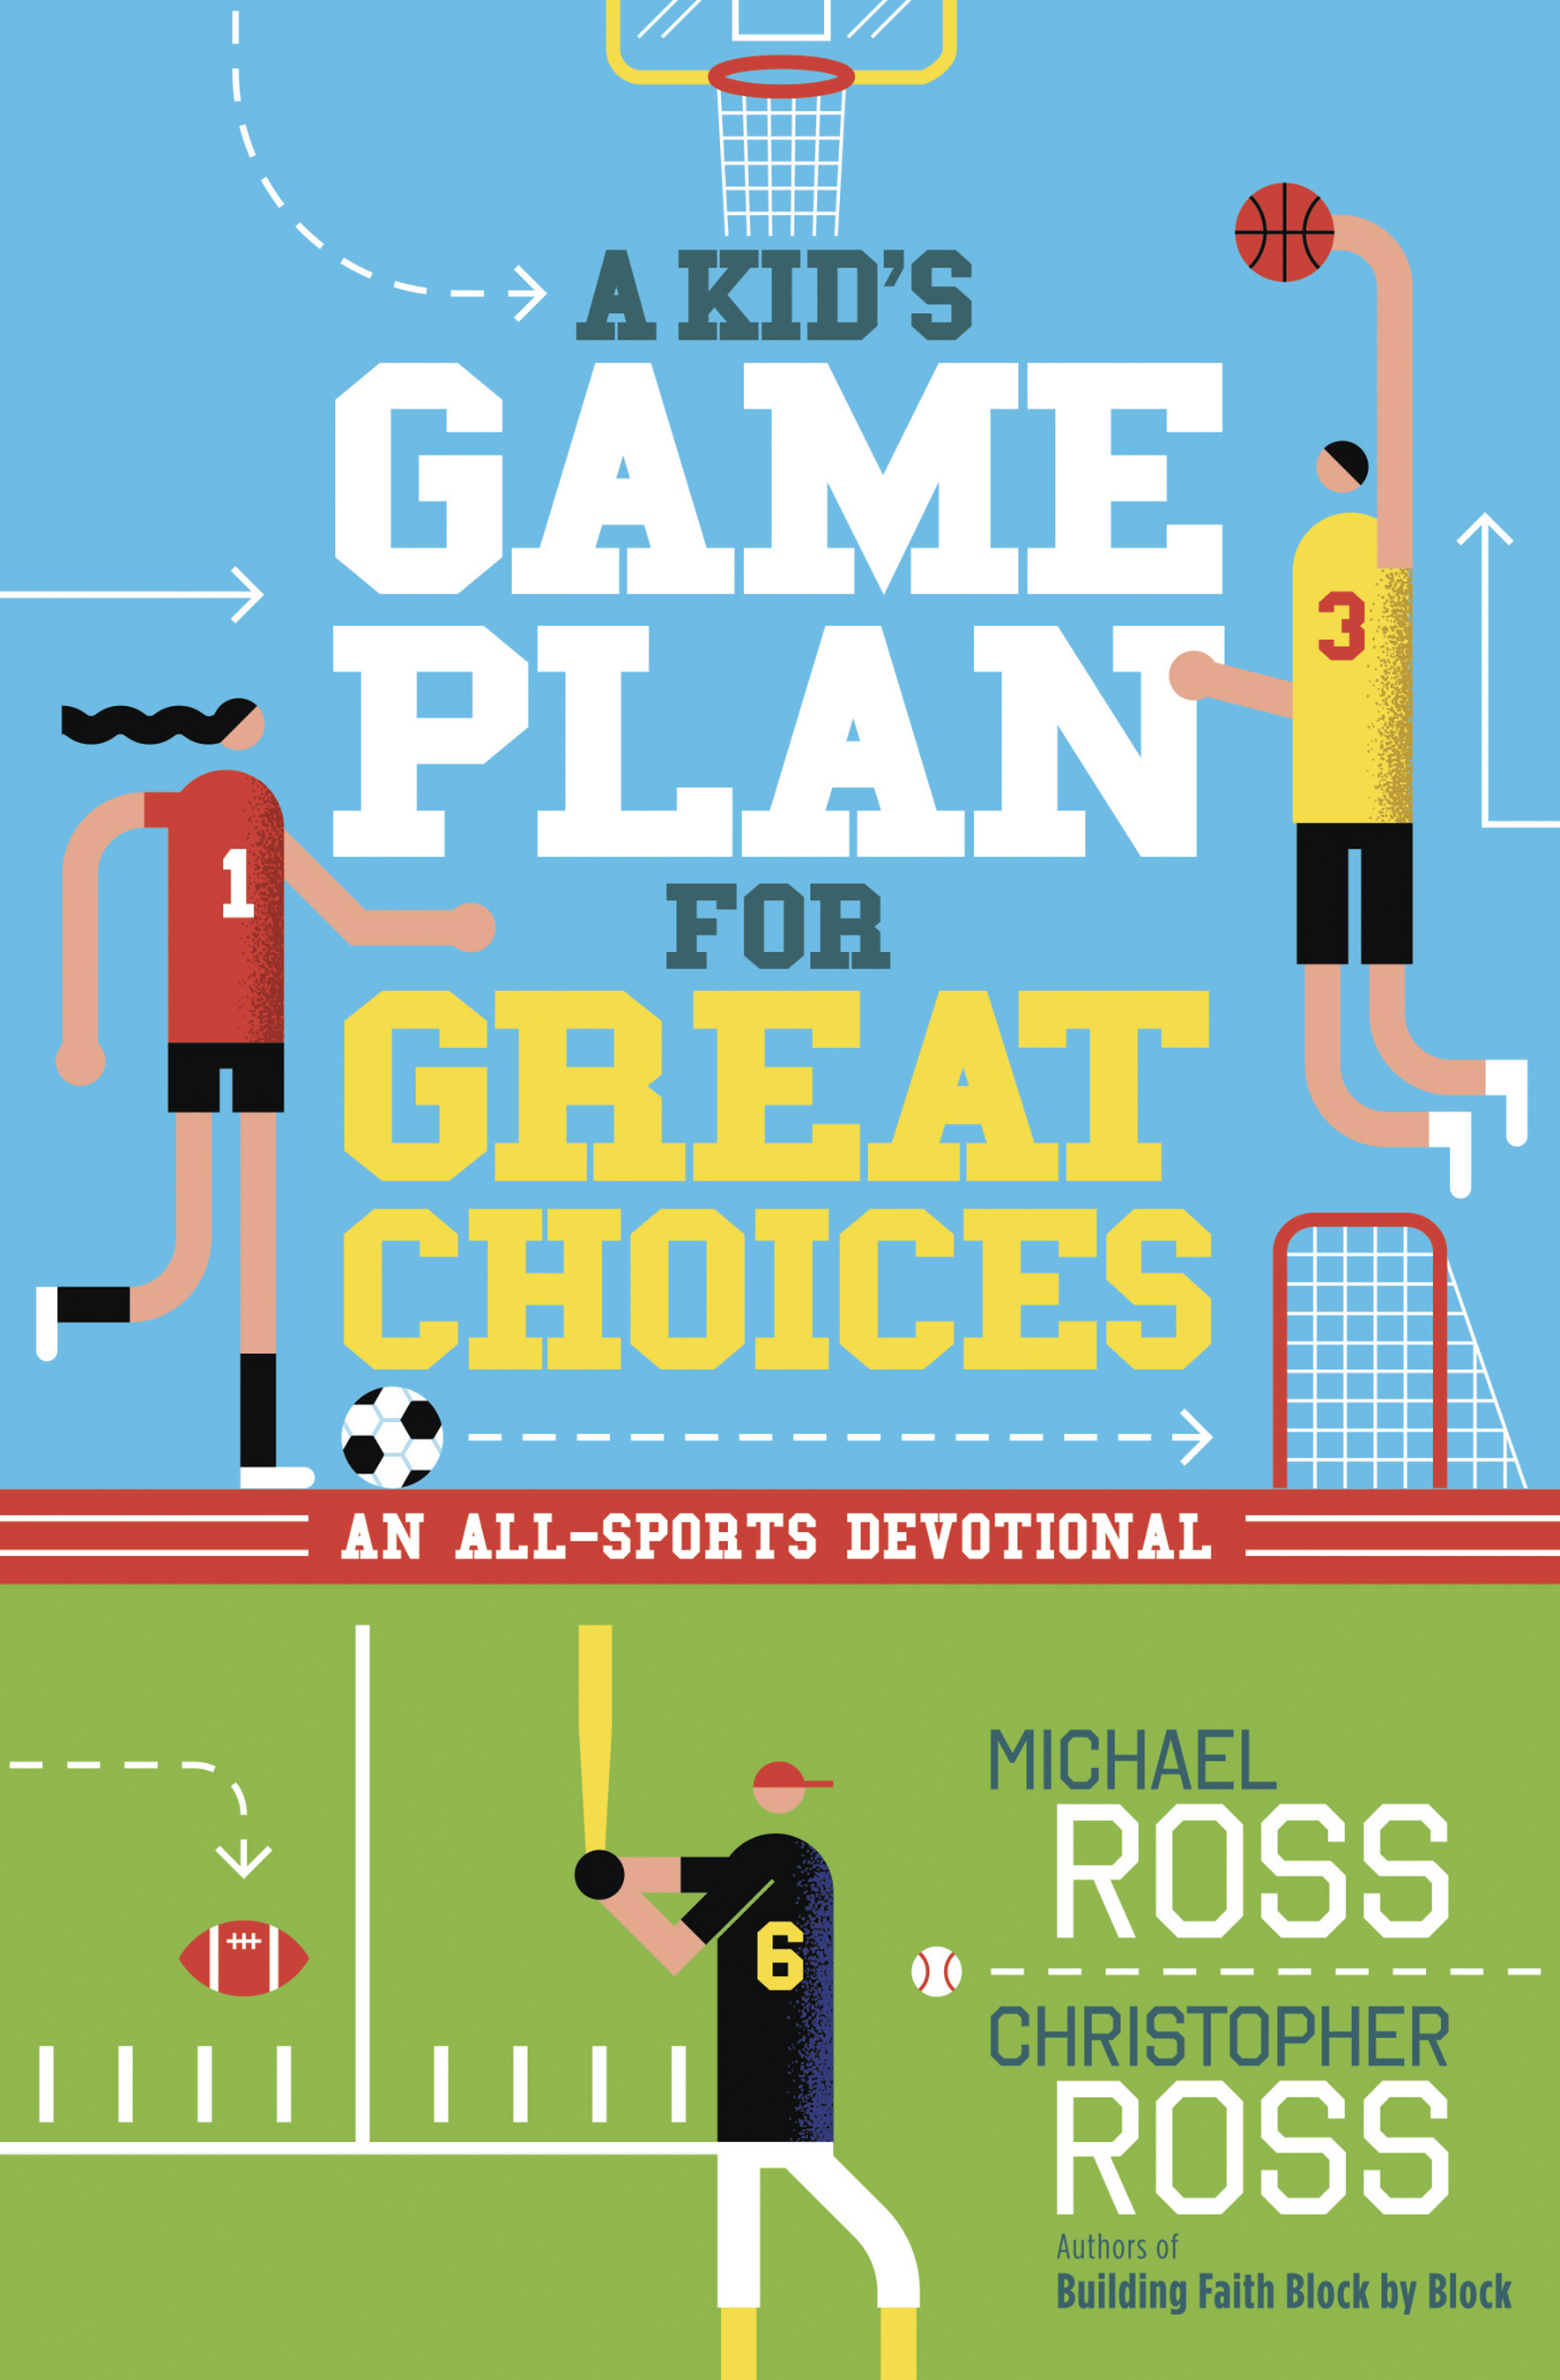 e66d6bf26bf Read more in A Kid s Game Plan for Great Choices by Michael Ross and  Christopher Ross